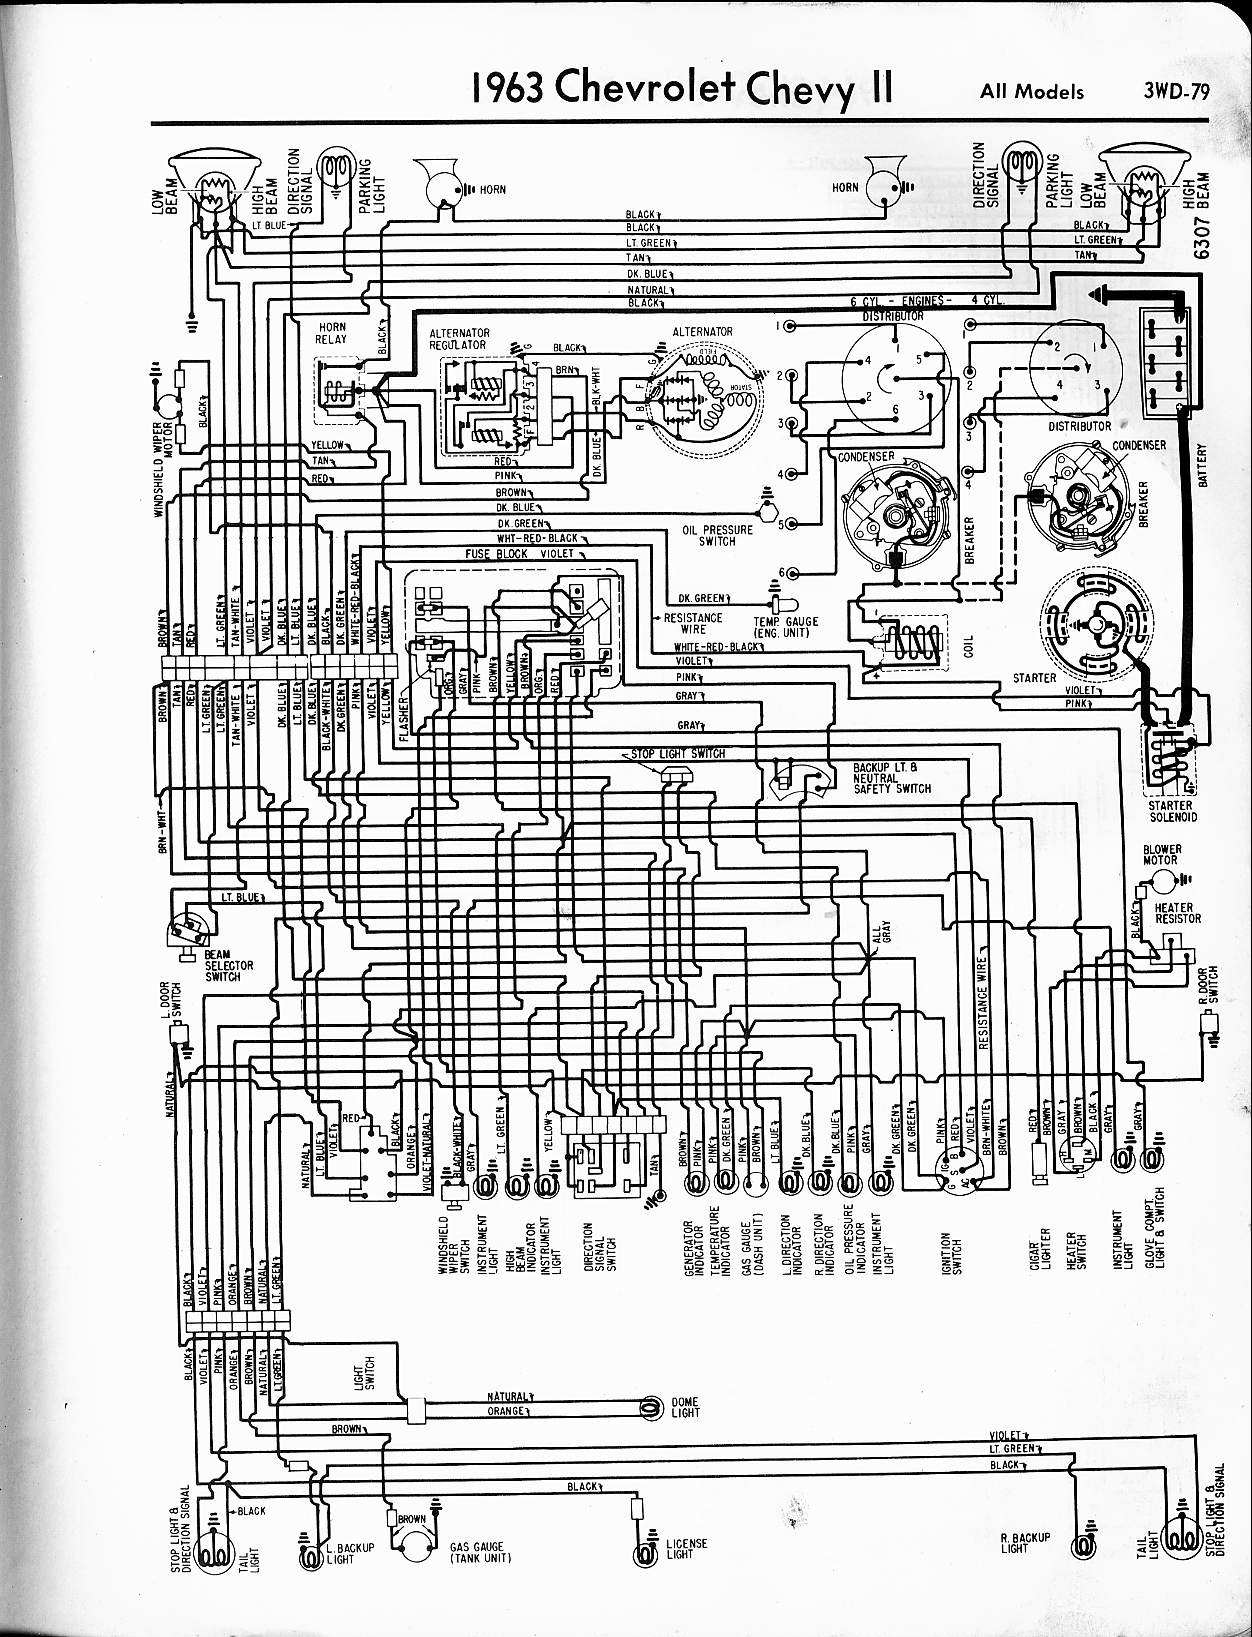 57 65 chevy wiring diagrams 1963 chevy ii all models